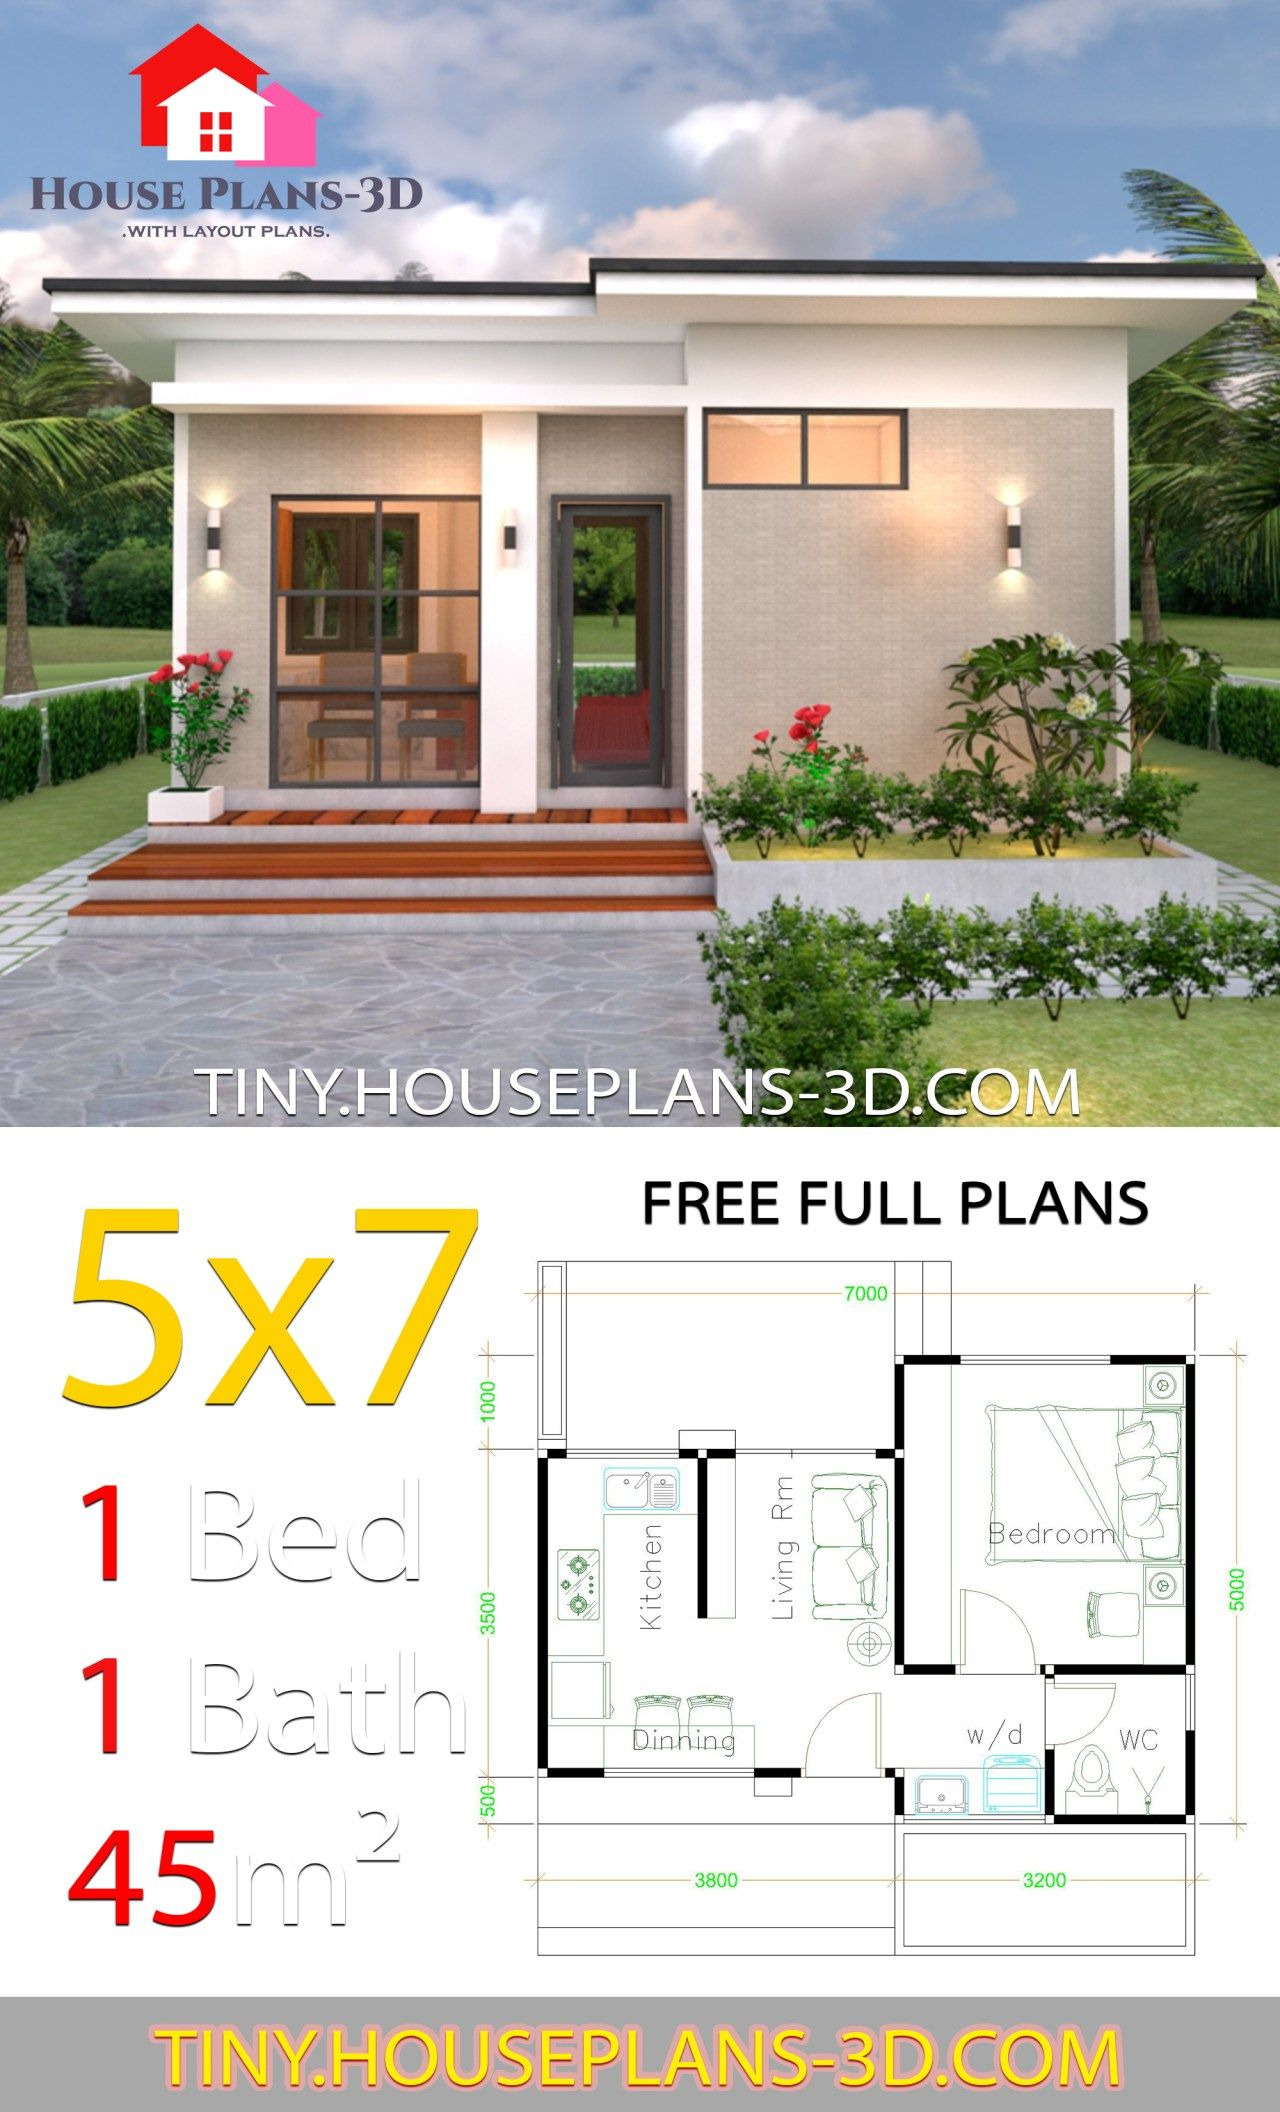 Small House Design Plans Unique Small House Design Plans 5x7 with E Bedroom Shed Roof